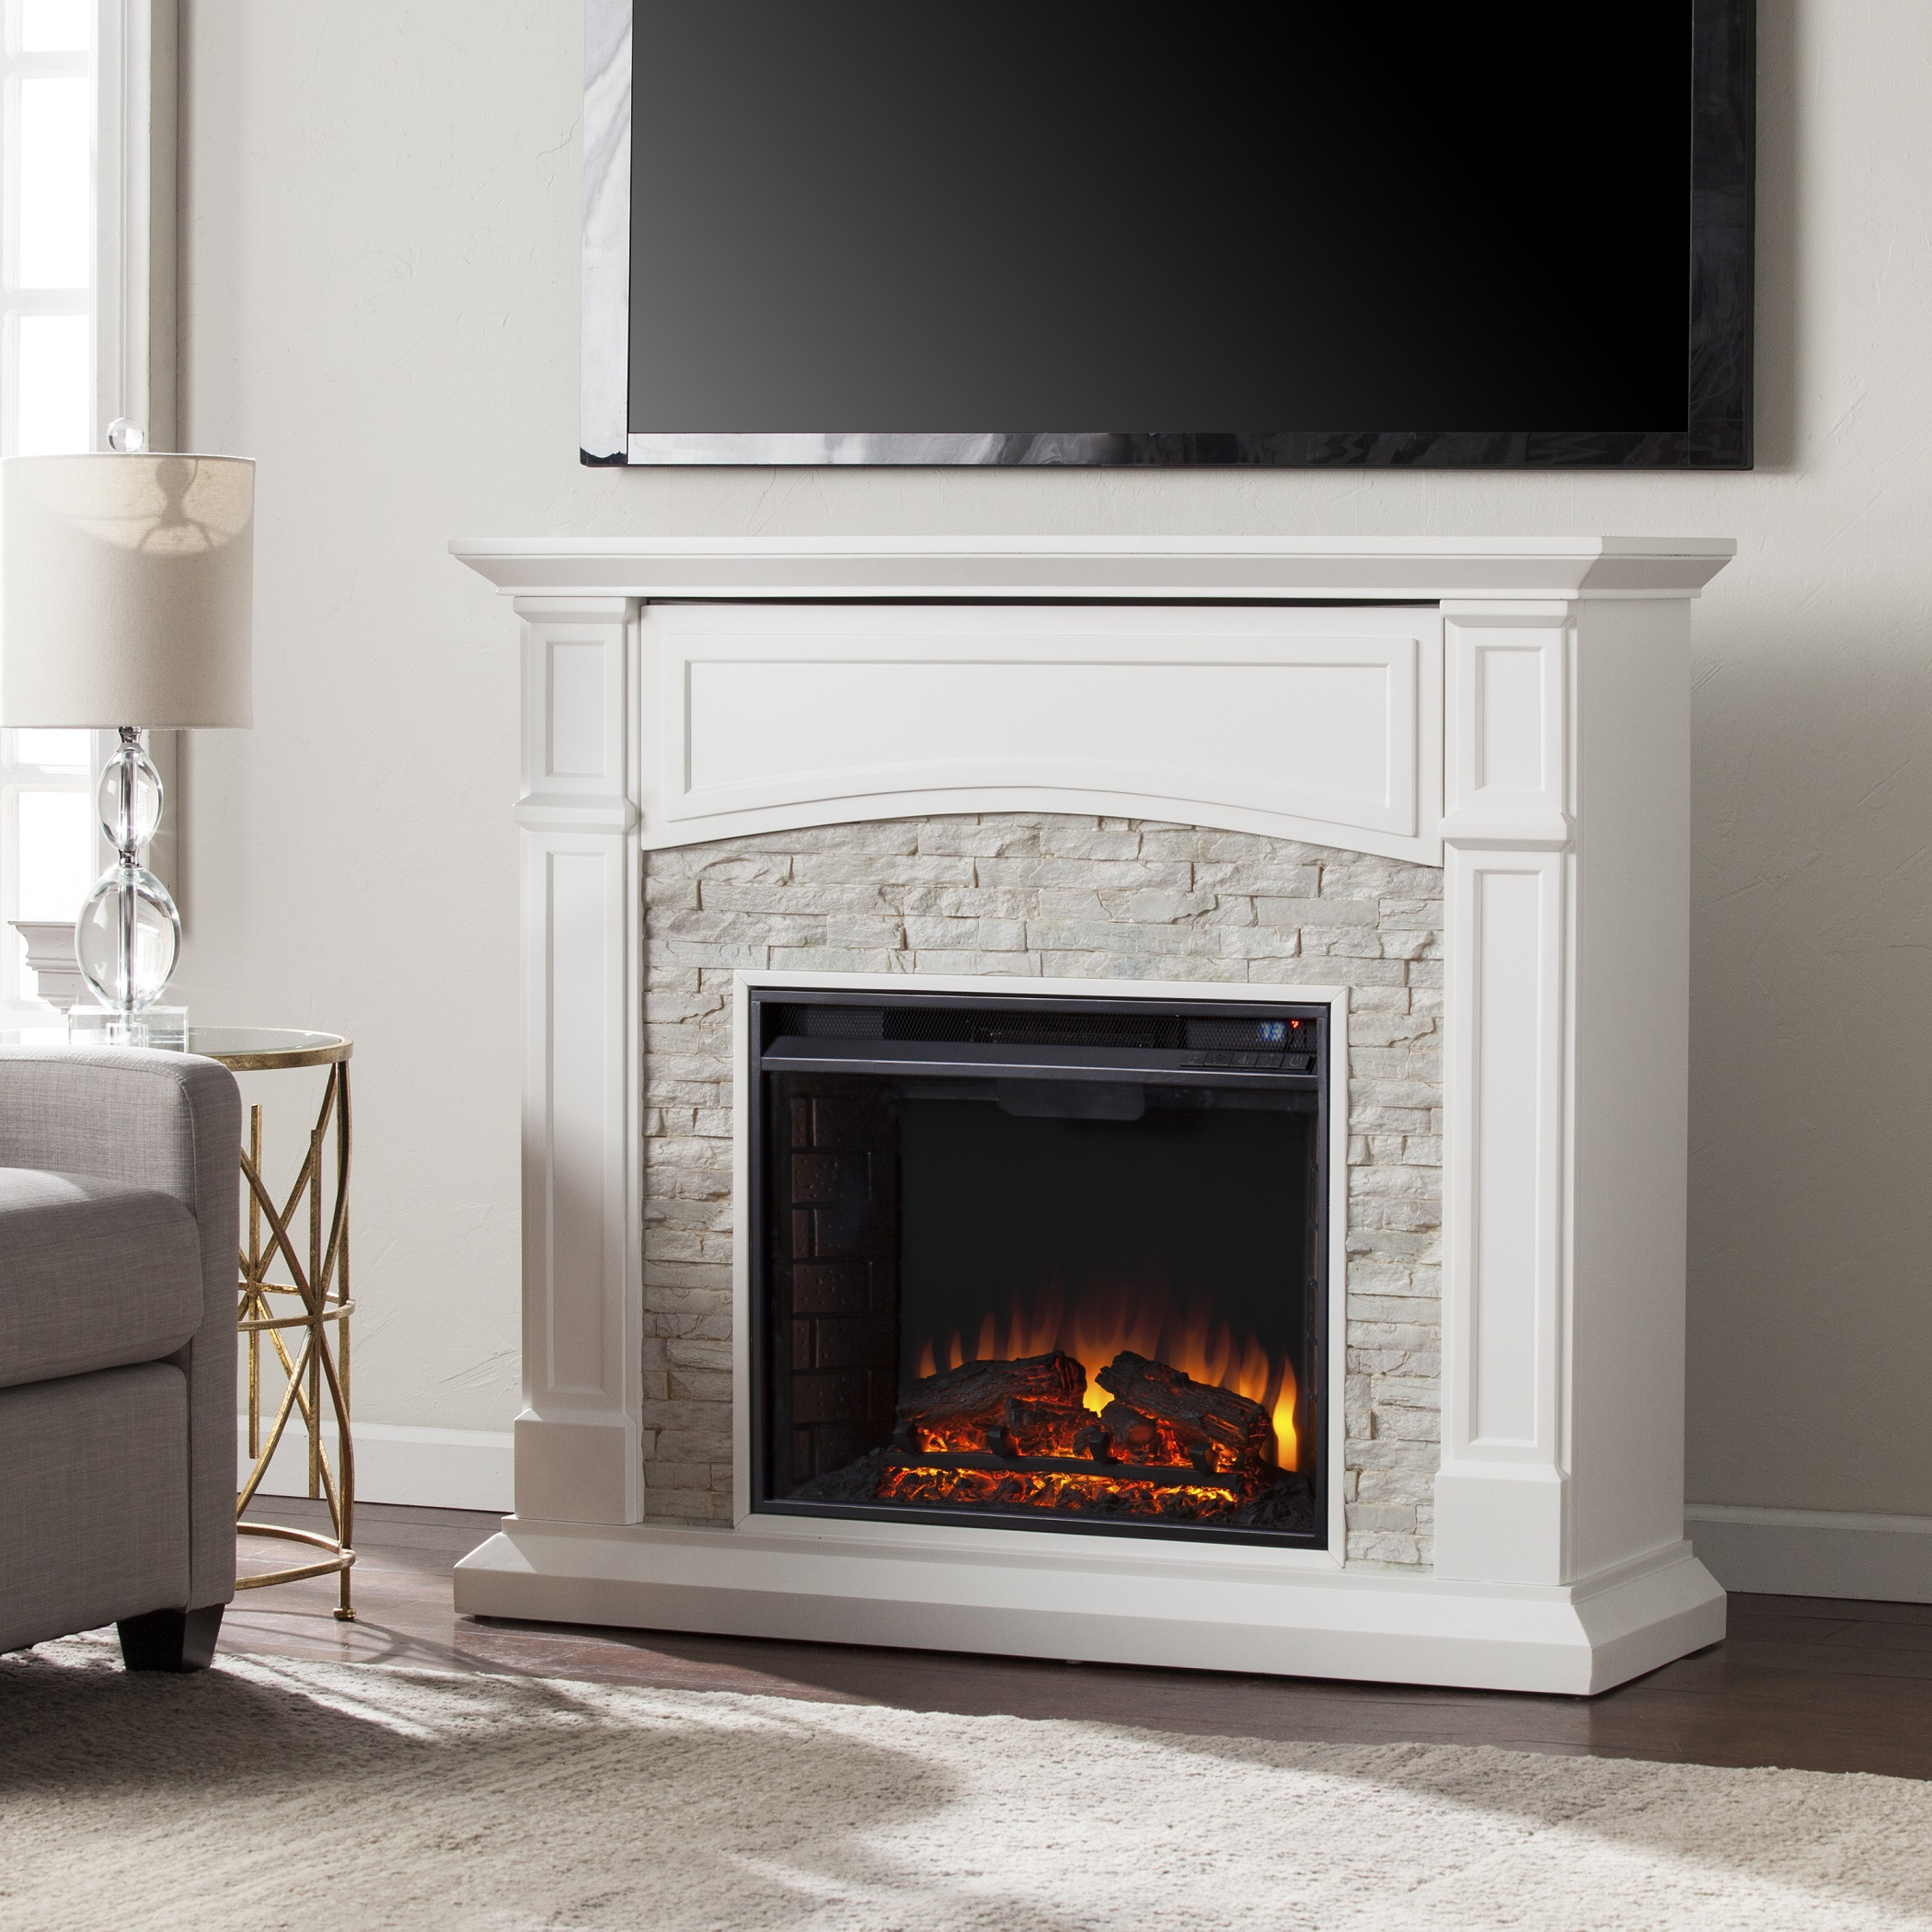 value fireplace electric wm glass imgsizexdim white beautiful mount pictures wall ideas amantii inch